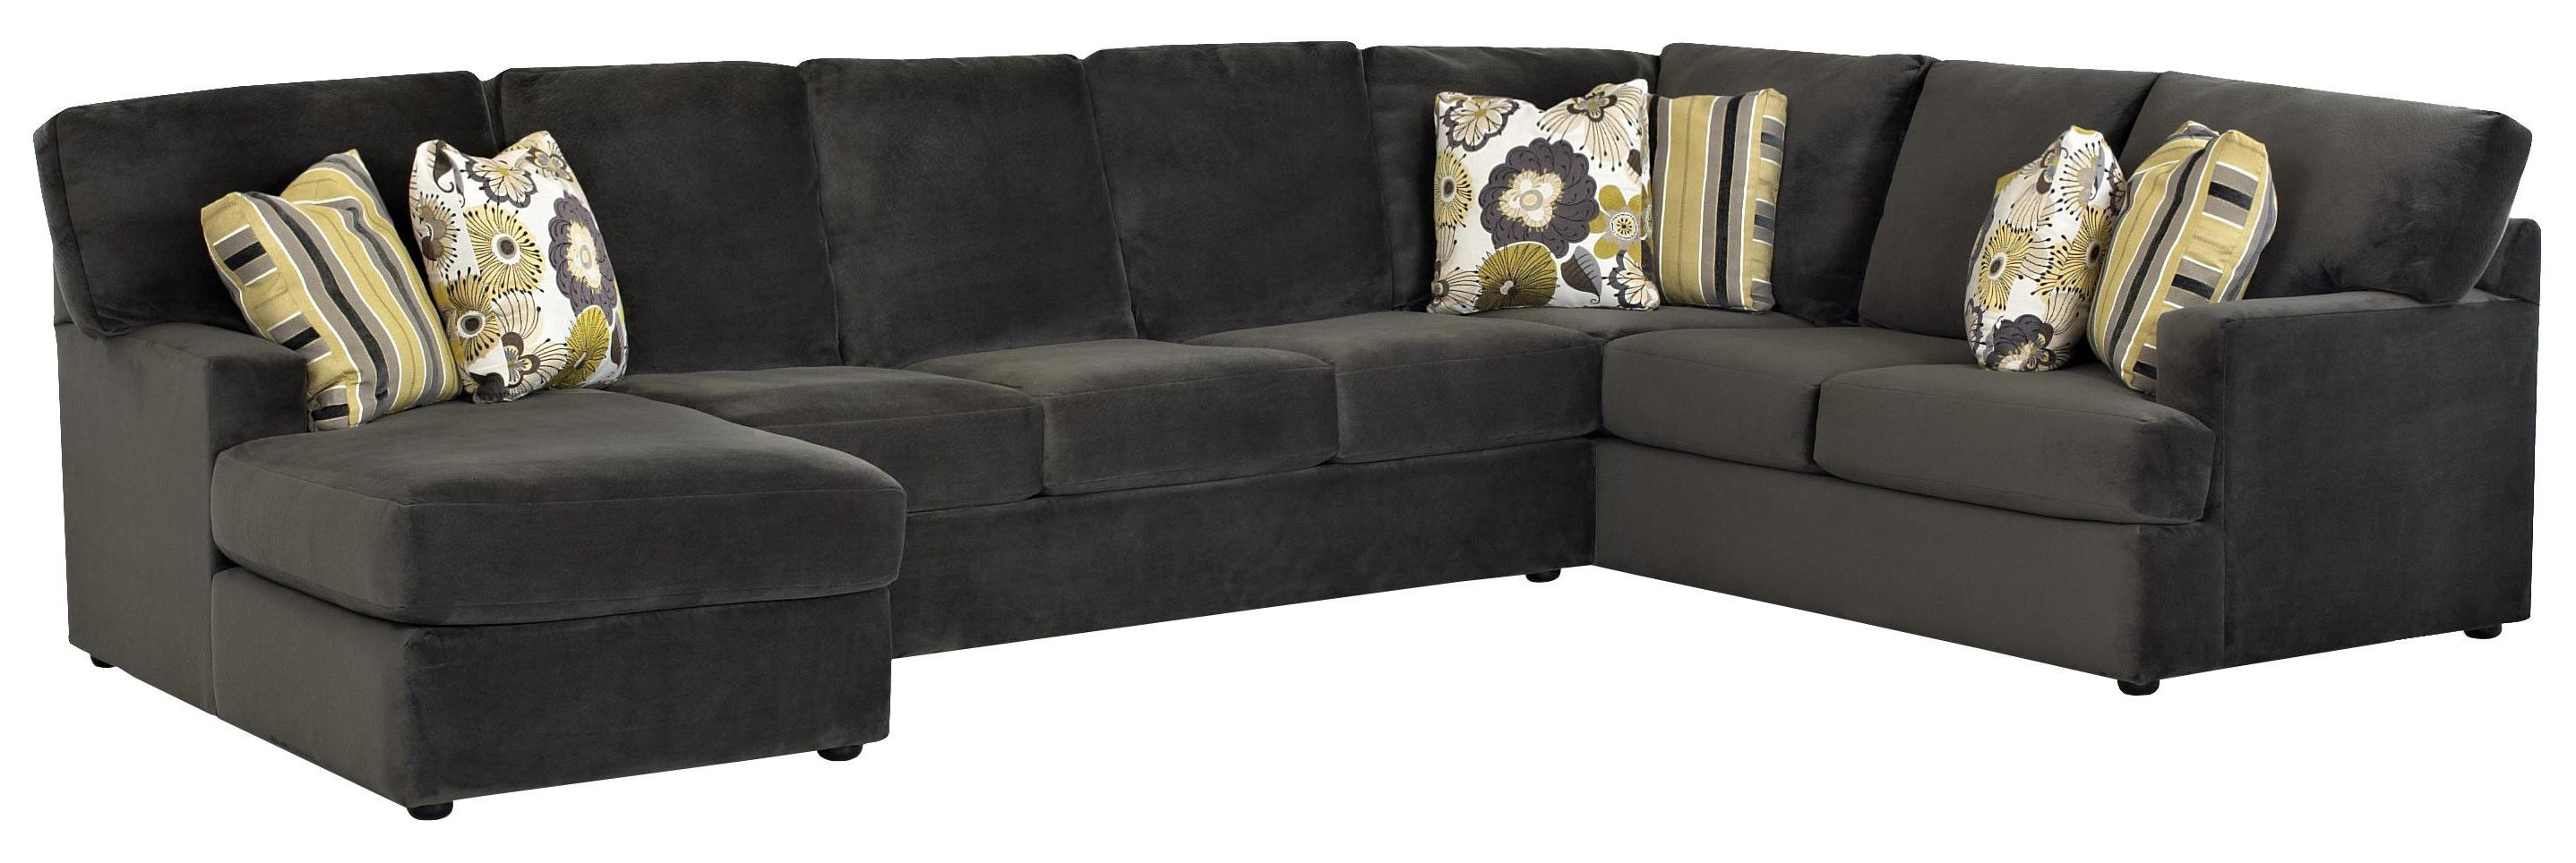 Sectional sofa with left side chaise by klaussner wolf for Sectional sofas wolf furniture